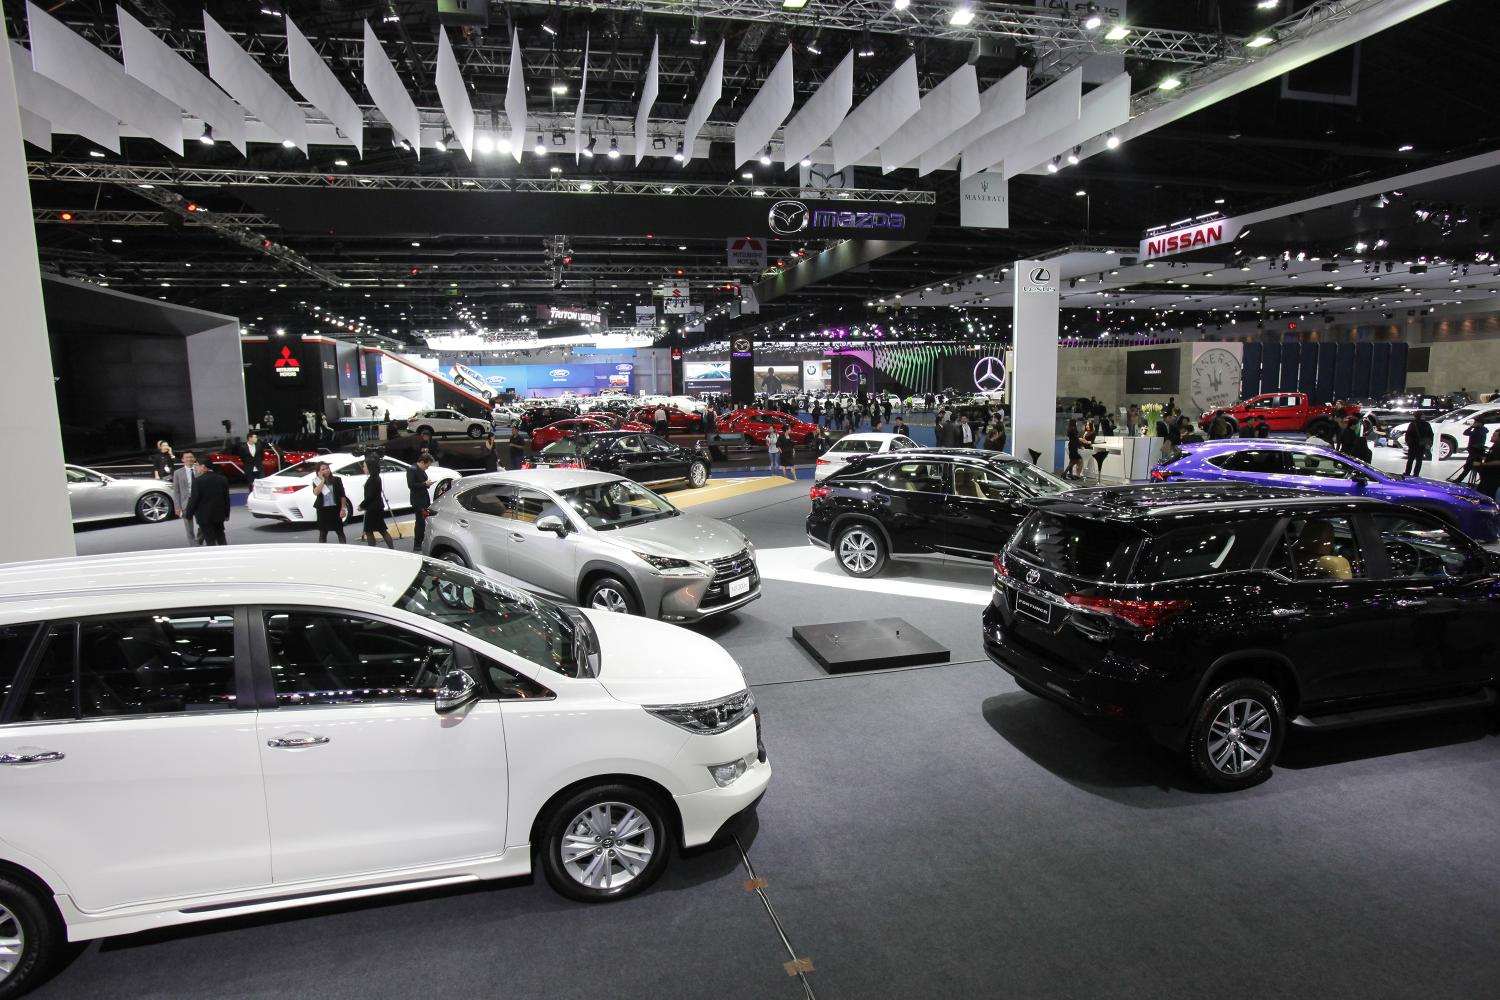 Cars on display at Bangkok International Motor Show. The FTI is proposing assistance measures to generate new car sales, staving off depreciation. (Photo by Tawatchai Kemgumnerd)